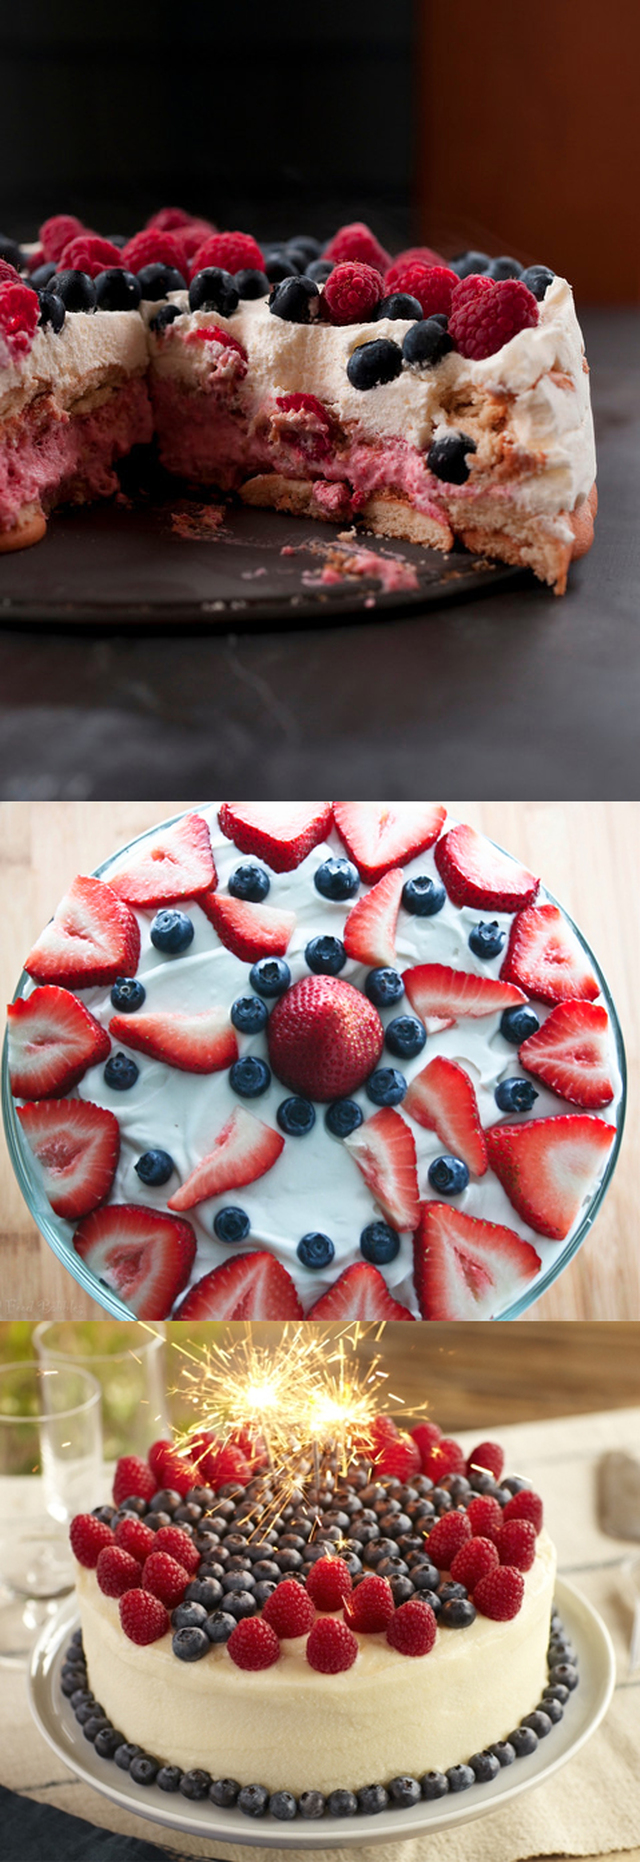 July 4th Strawberry Ice box Cake with Wafer Crust for Independence Day